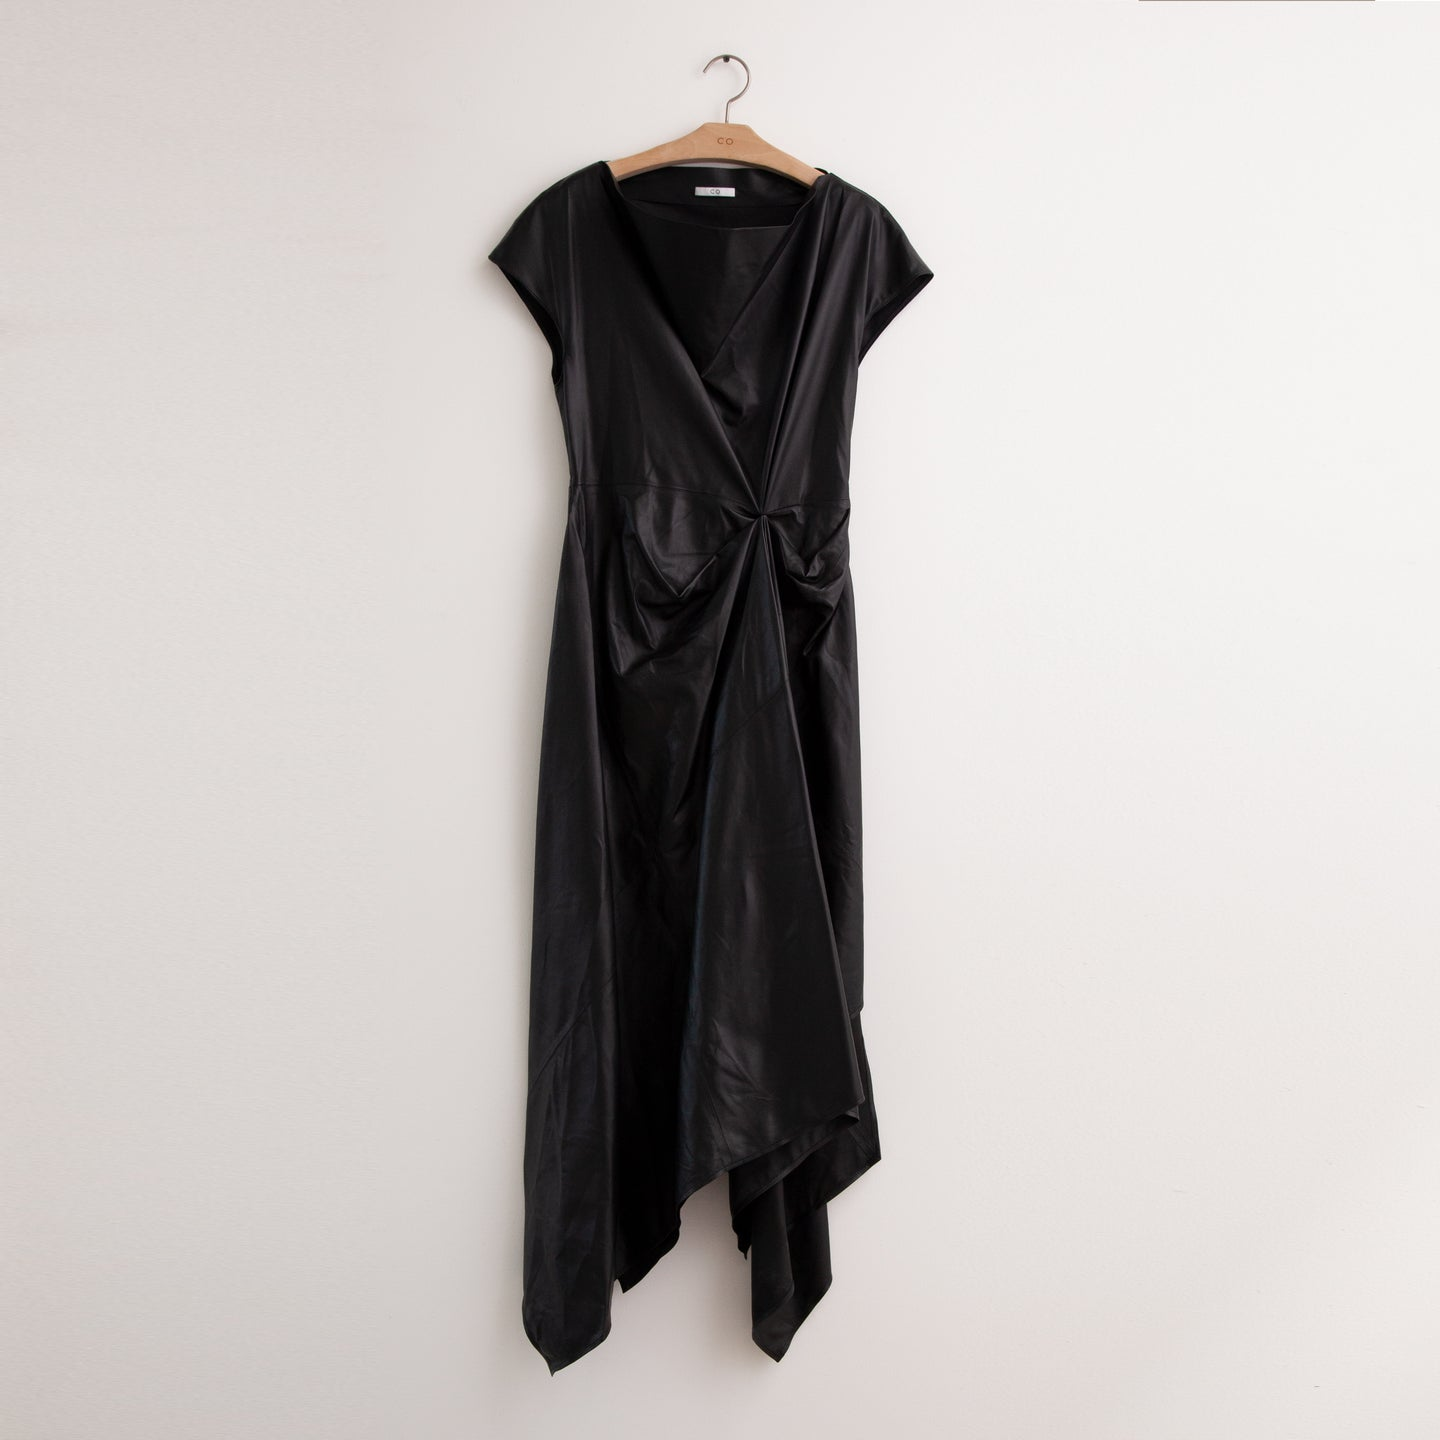 Cap sleeve dress with asymmetrical hem in black nappa leather - CO